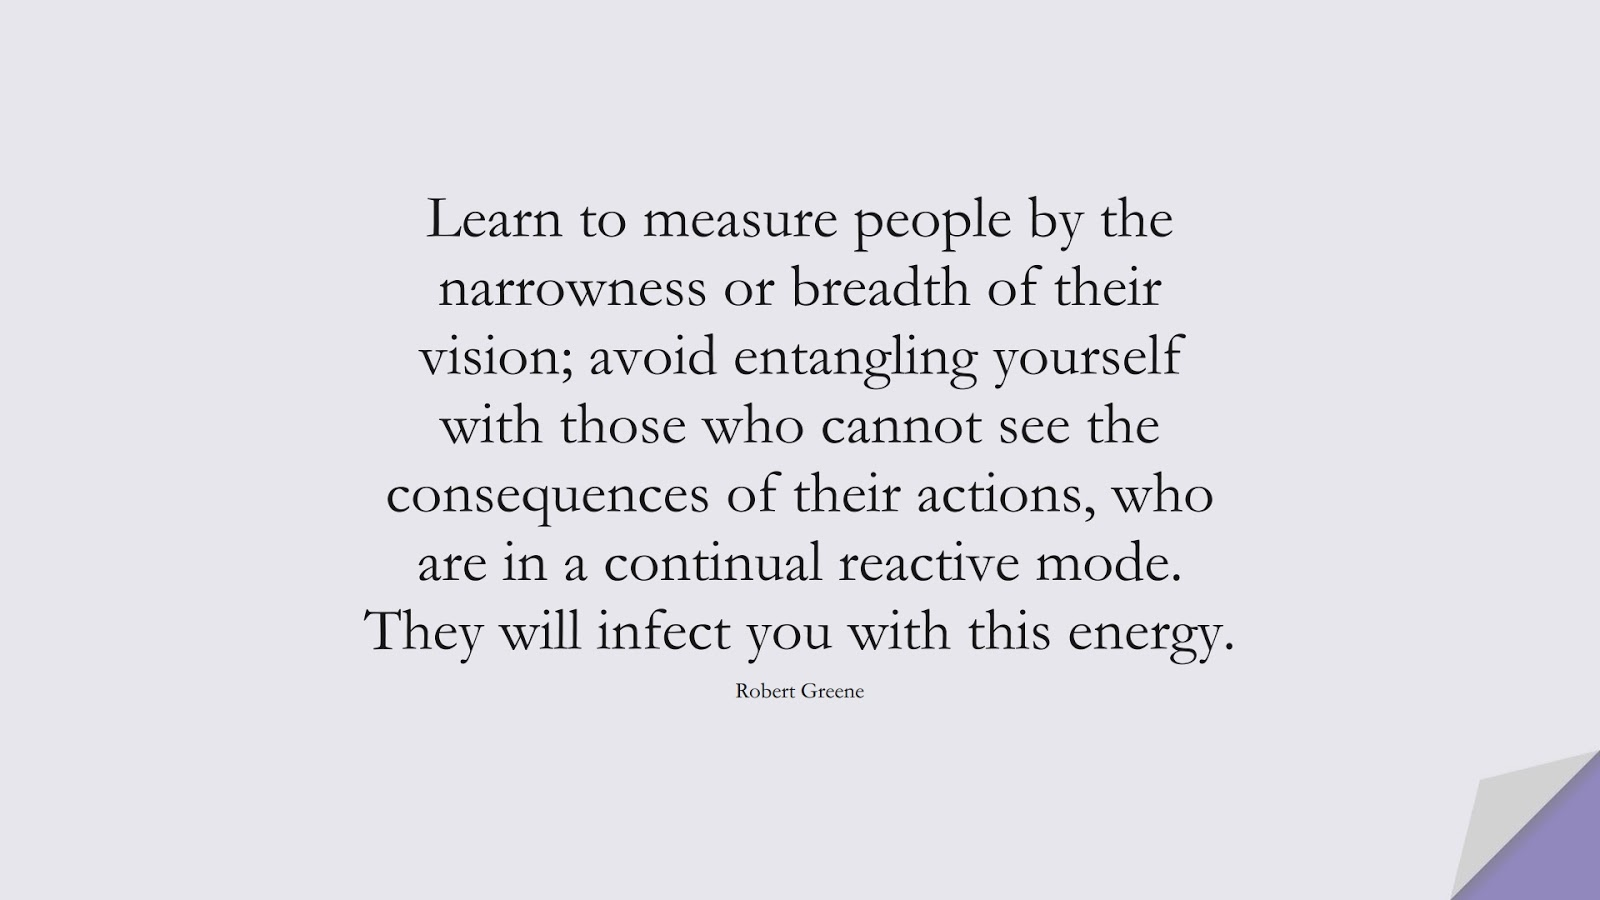 Learn to measure people by the narrowness or breadth of their vision; avoid entangling yourself with those who cannot see the consequences of their actions, who are in a continual reactive mode. They will infect you with this energy. (Robert Greene);  #RelationshipQuotes